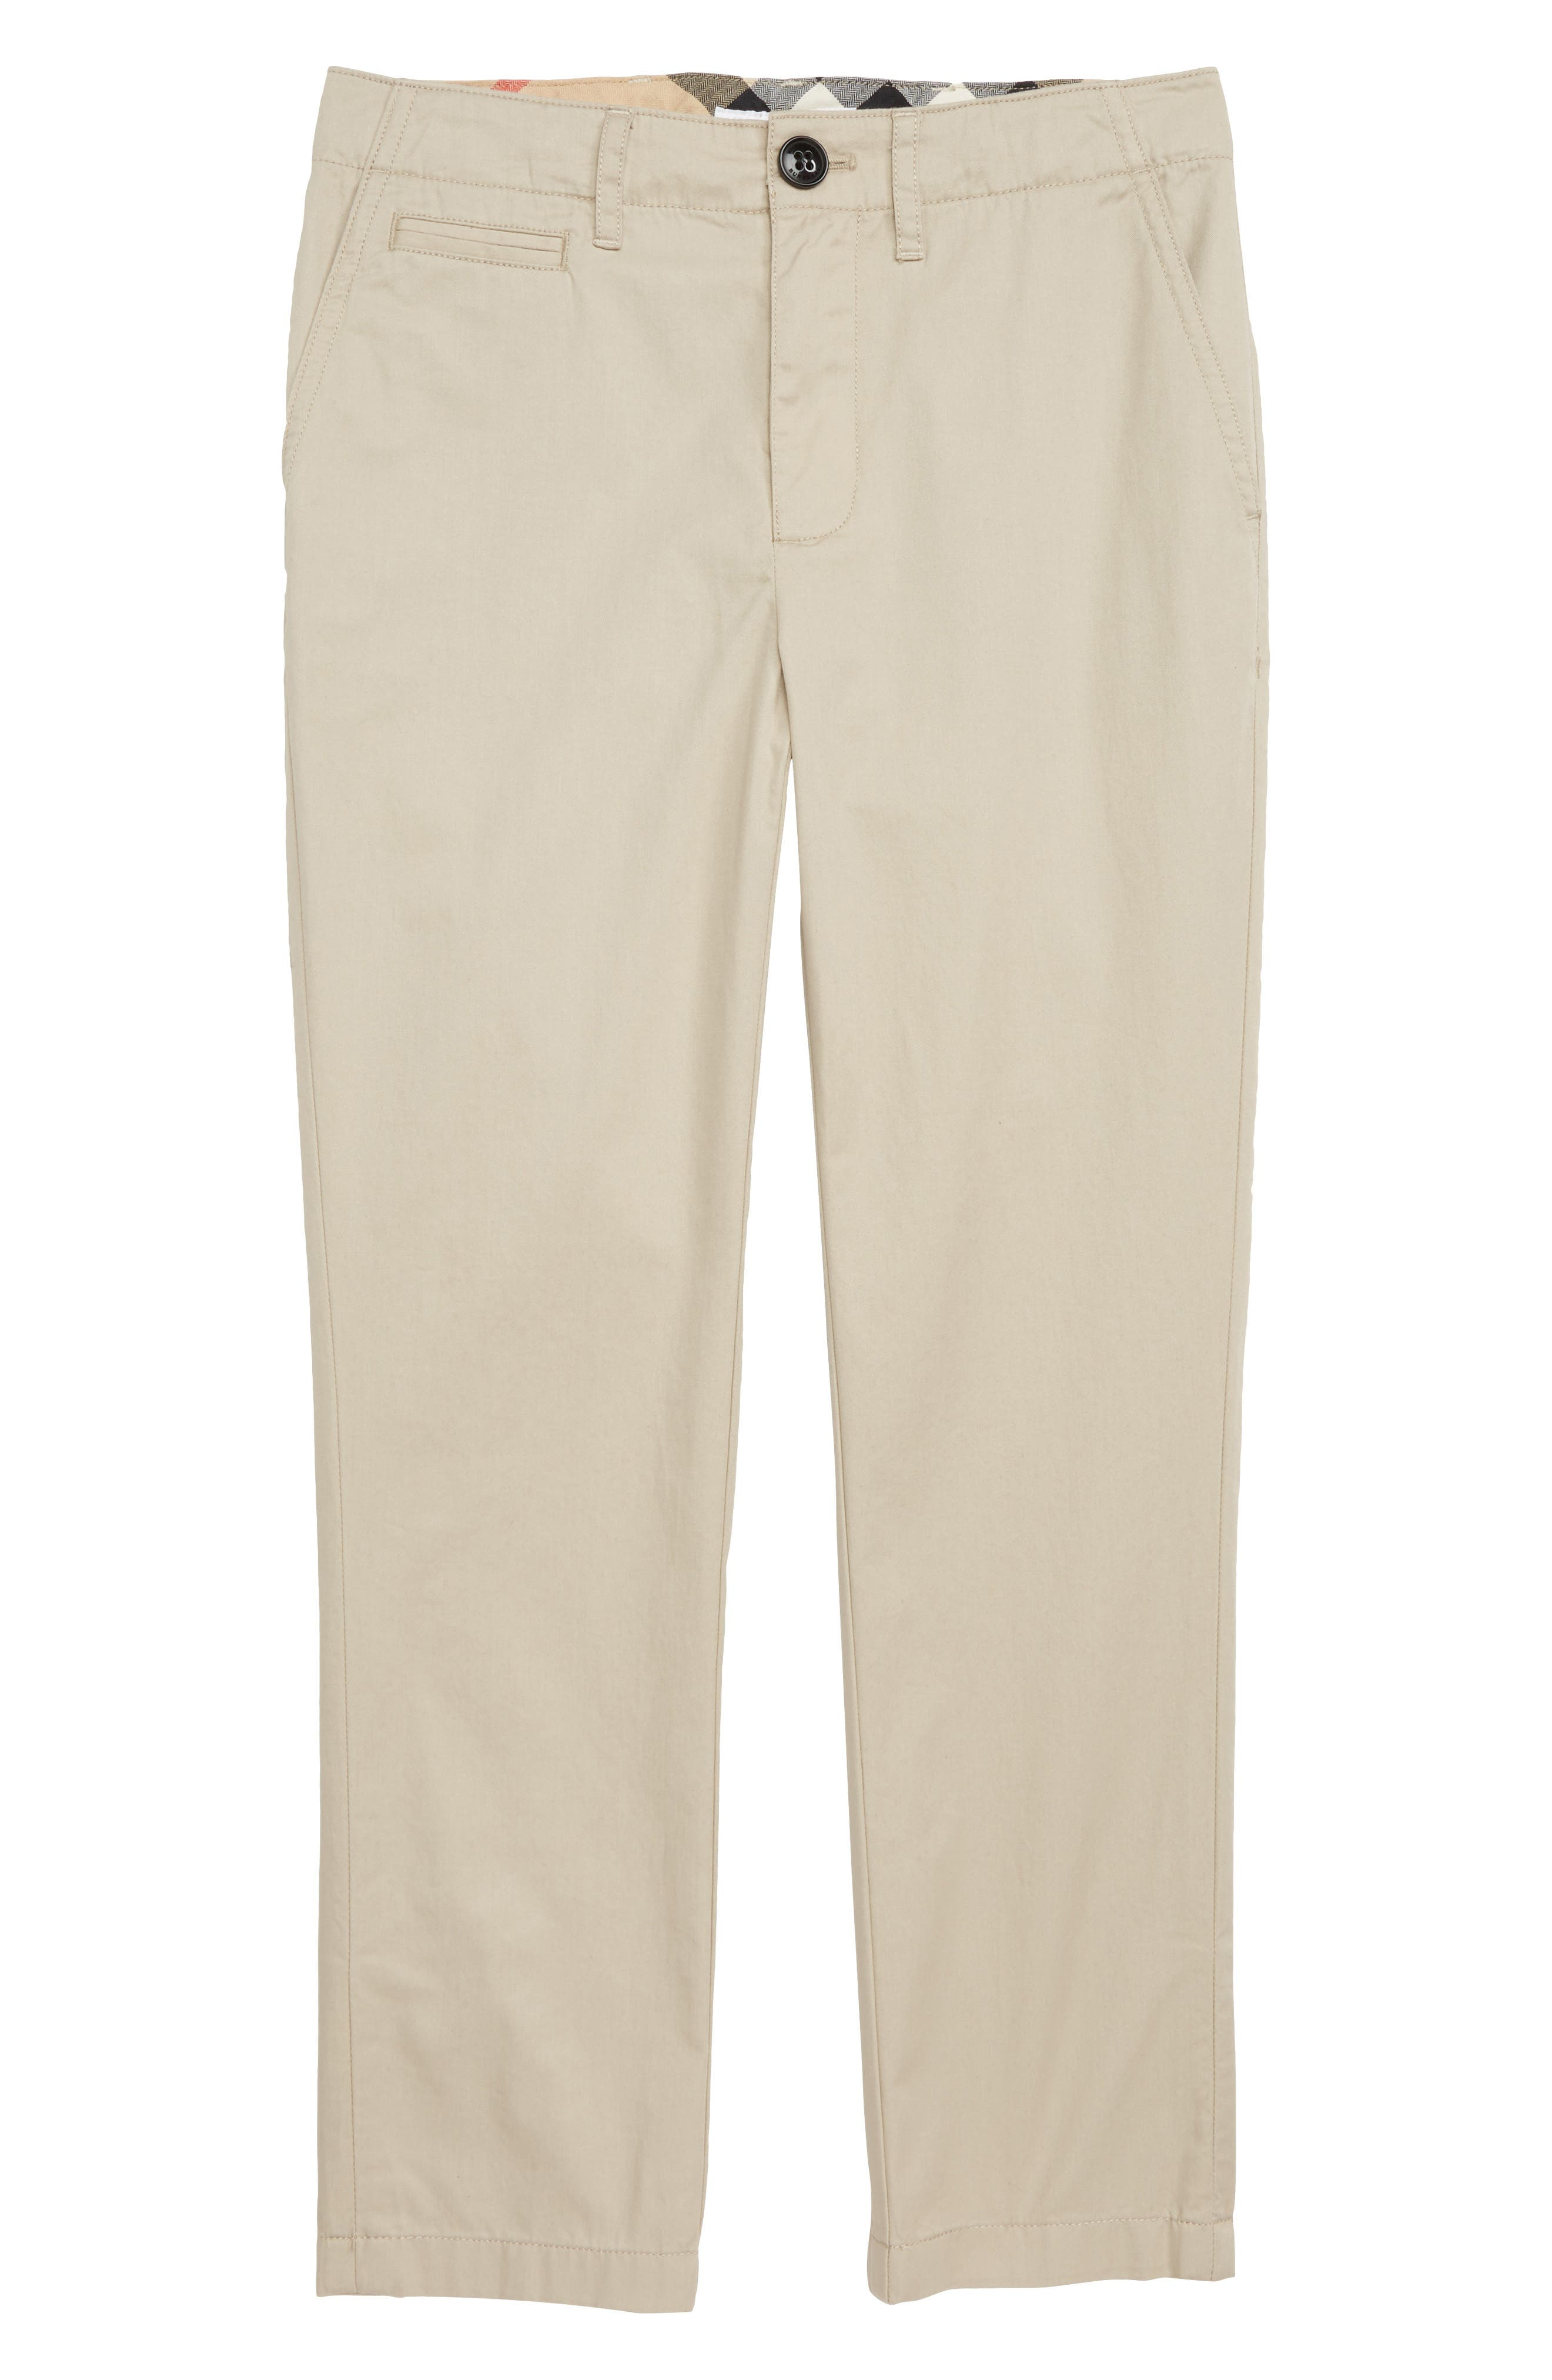 BURBERRY Kids Teo Trousers, Main, color, 028